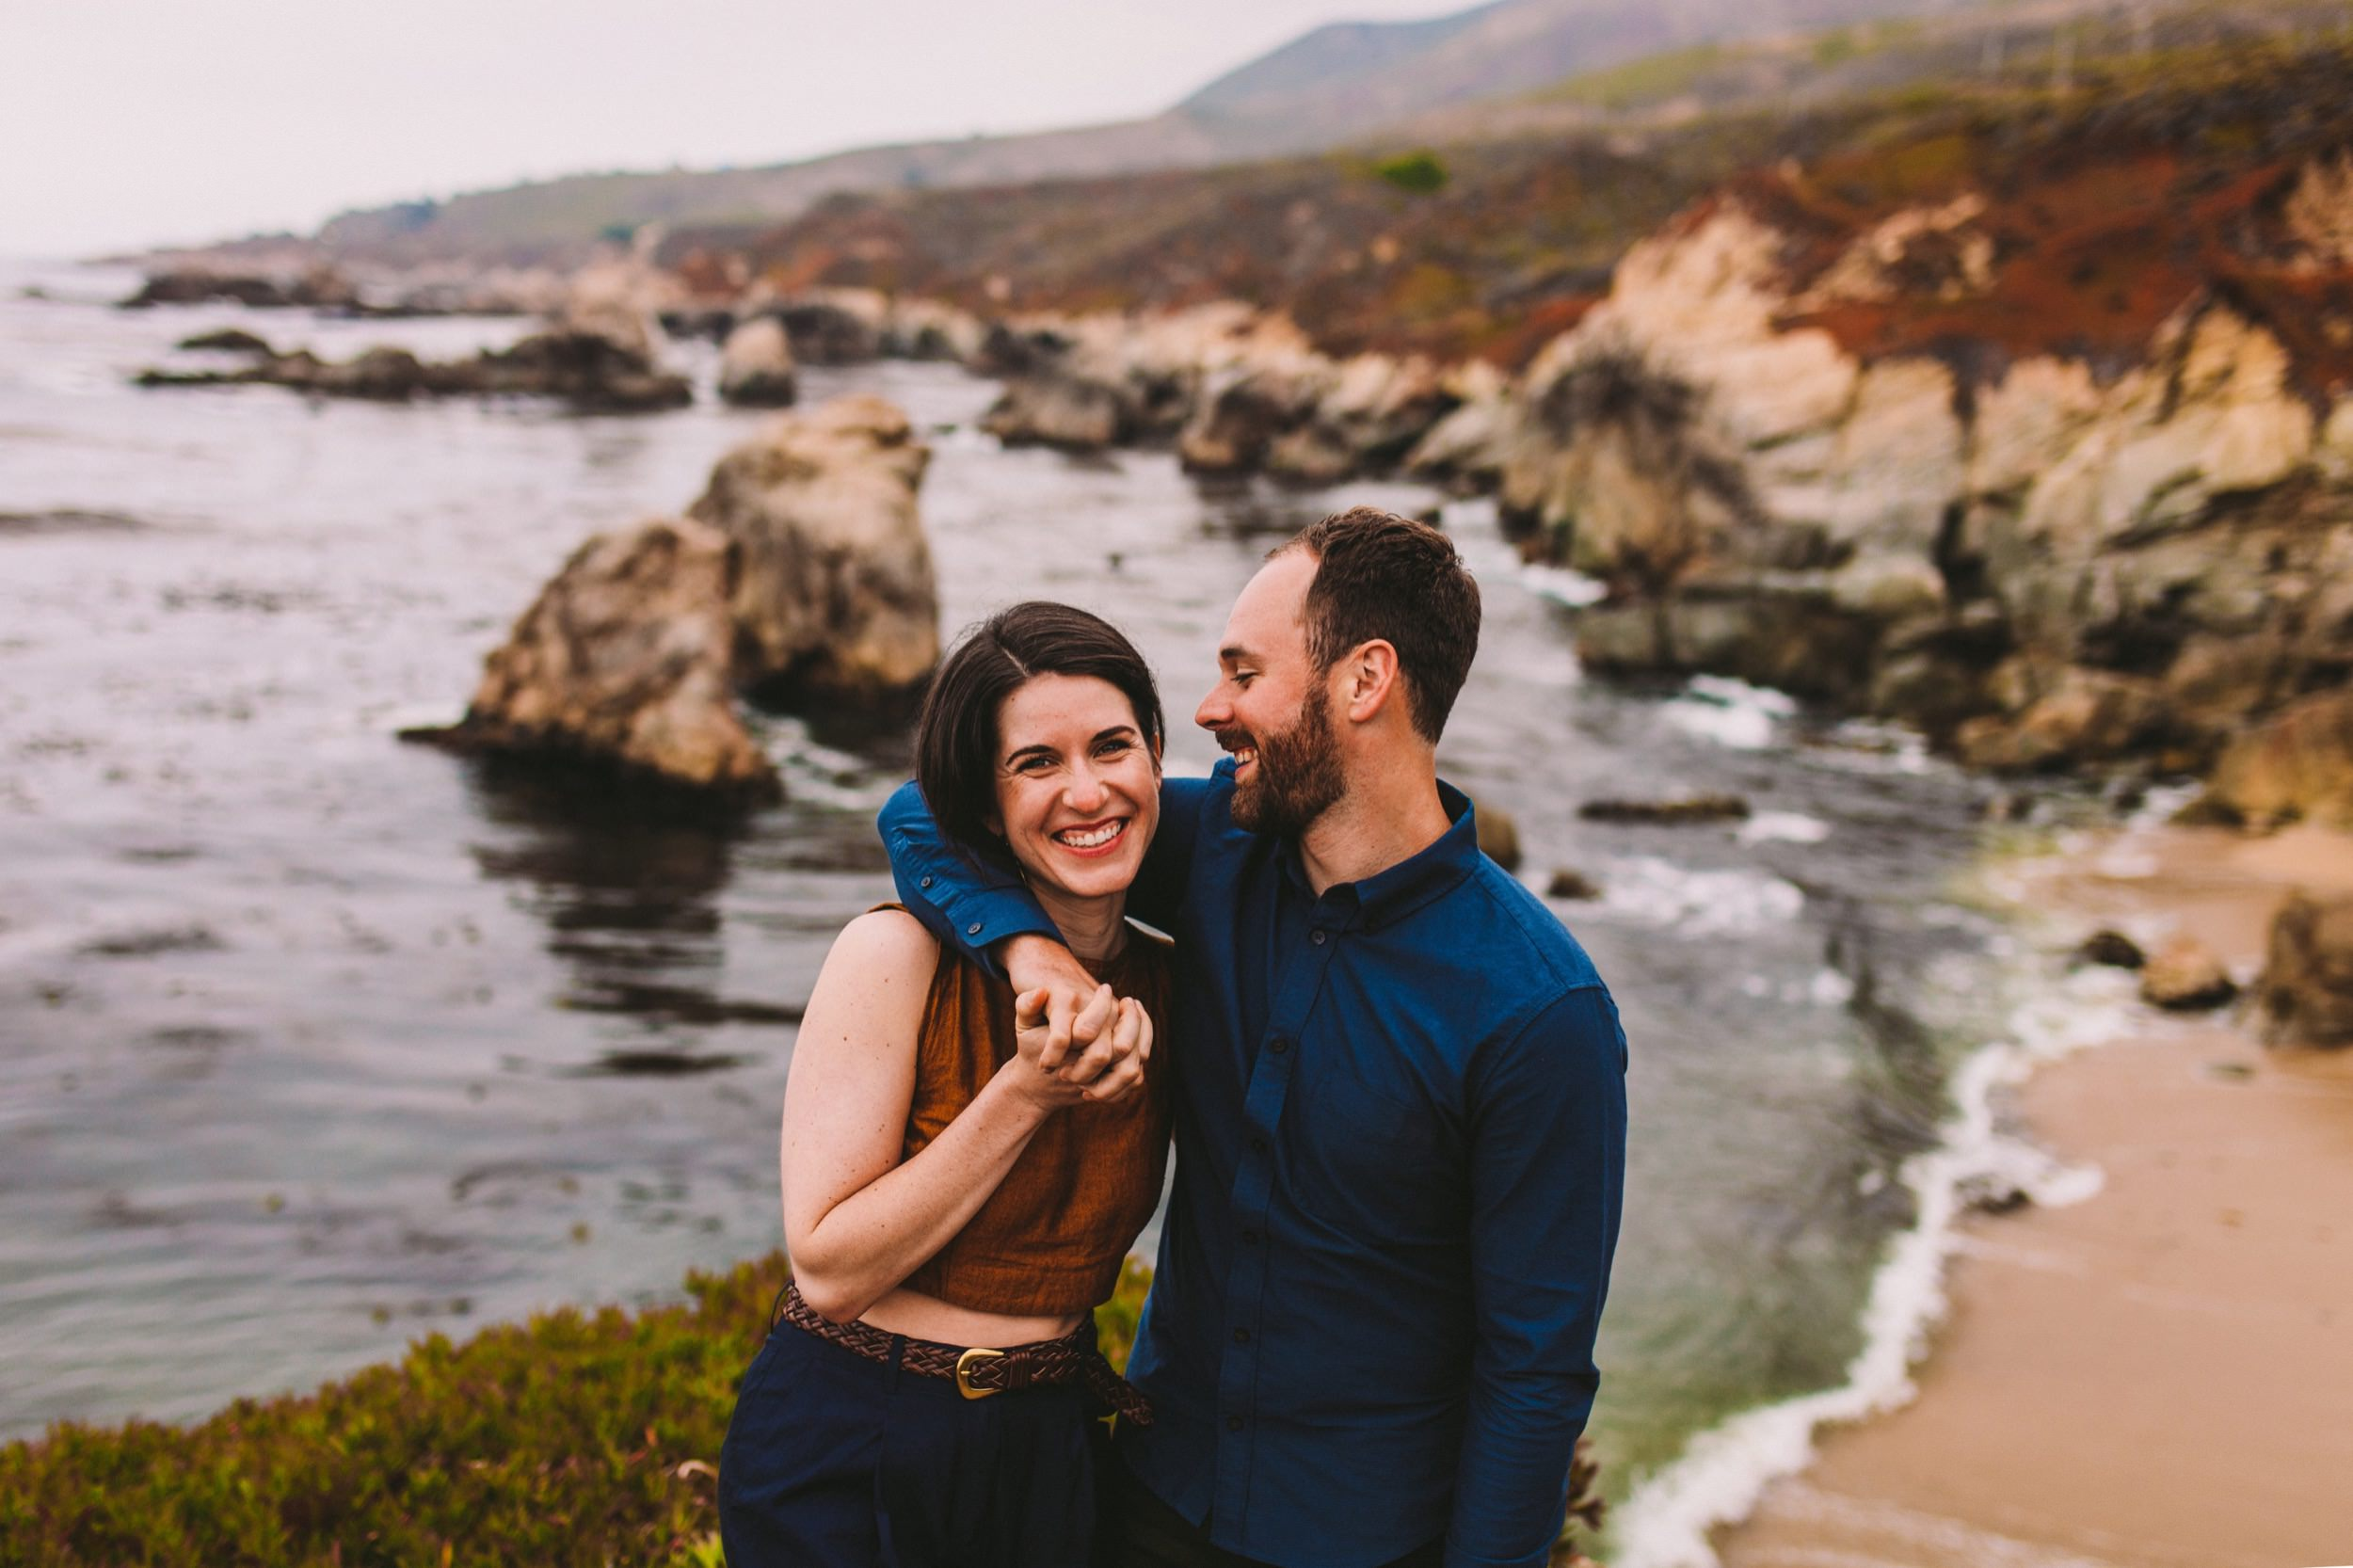 Garrapata State Park Engagement Photography Shoot-36.jpg